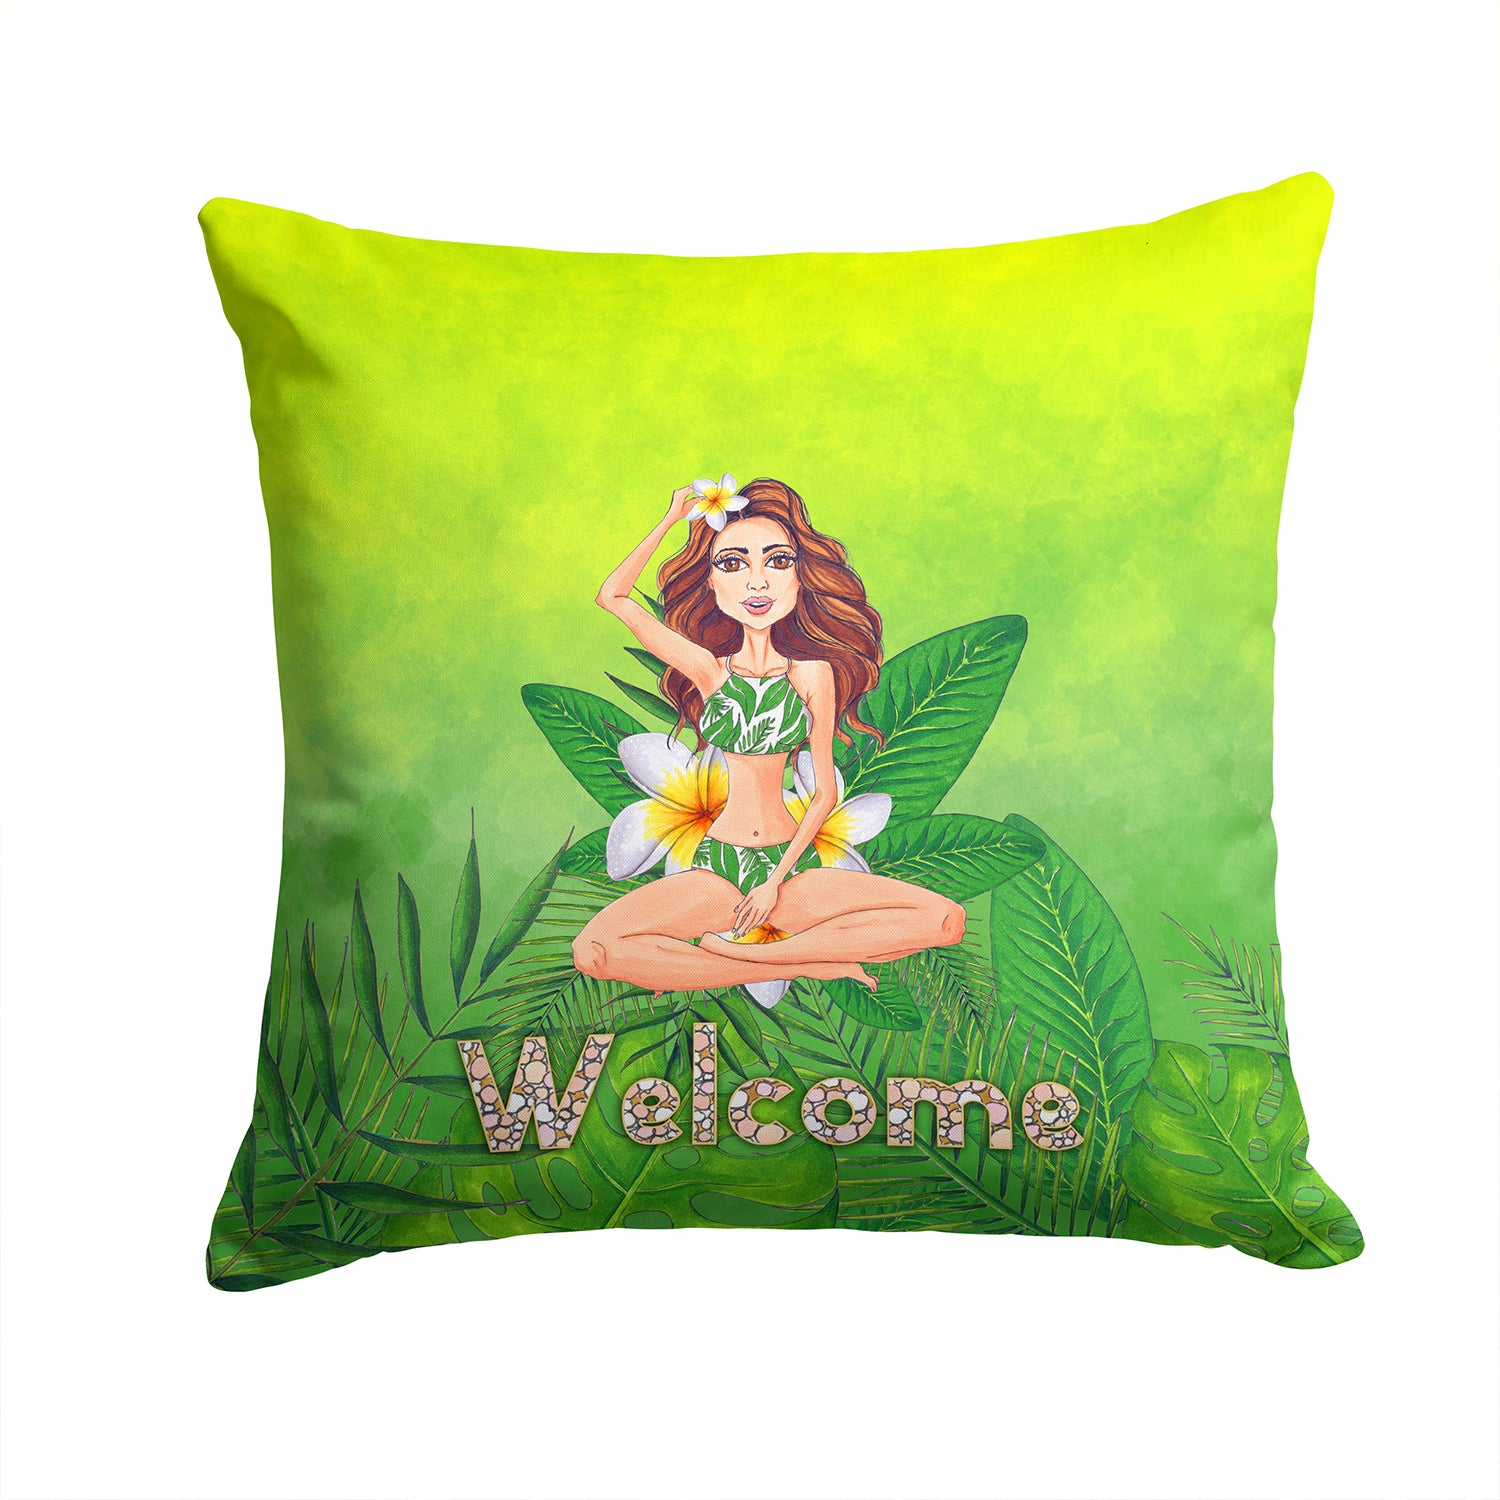 Welcome Lady in Bikini Summer Fabric Decorative Pillow BB7457PW1414 by Caroline's Treasures